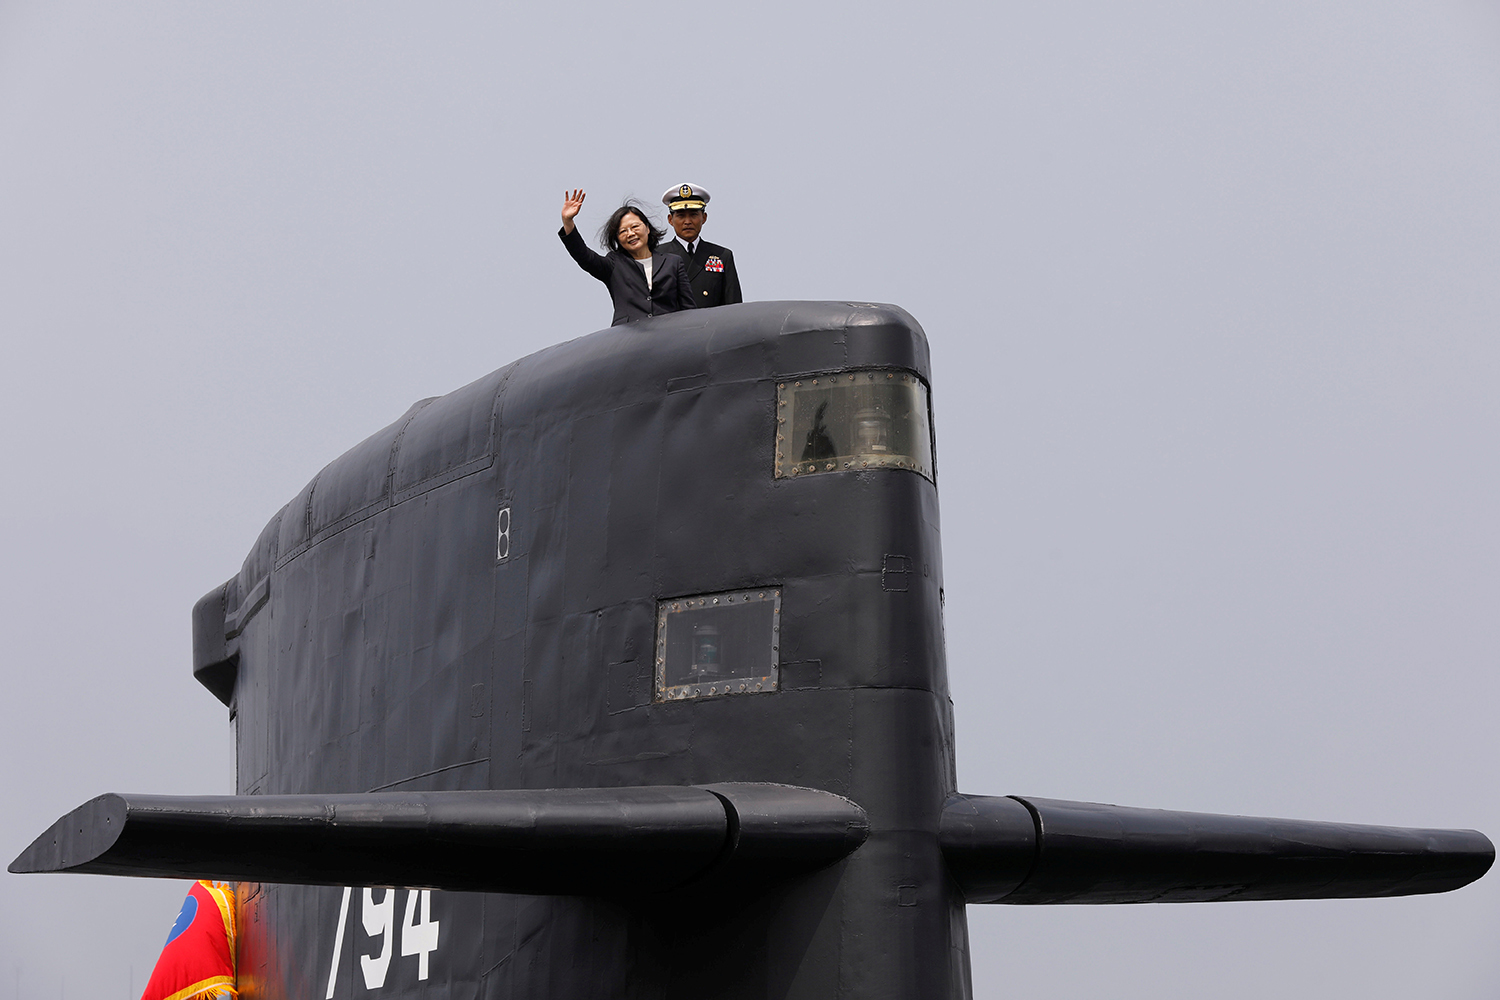 KAOHSIUNG 2017-03-21 Taiwan President Tsai Ing-wen waves as she boards Hai Lung-class submarine (SS-794) during her visit to a navy base in Kaohsiung, Taiwan March 21, 2017. REUTERS/Tyrone Siu TPX IMAGES OF THE DAY Photo: / REUTERS / TT / kod 72000